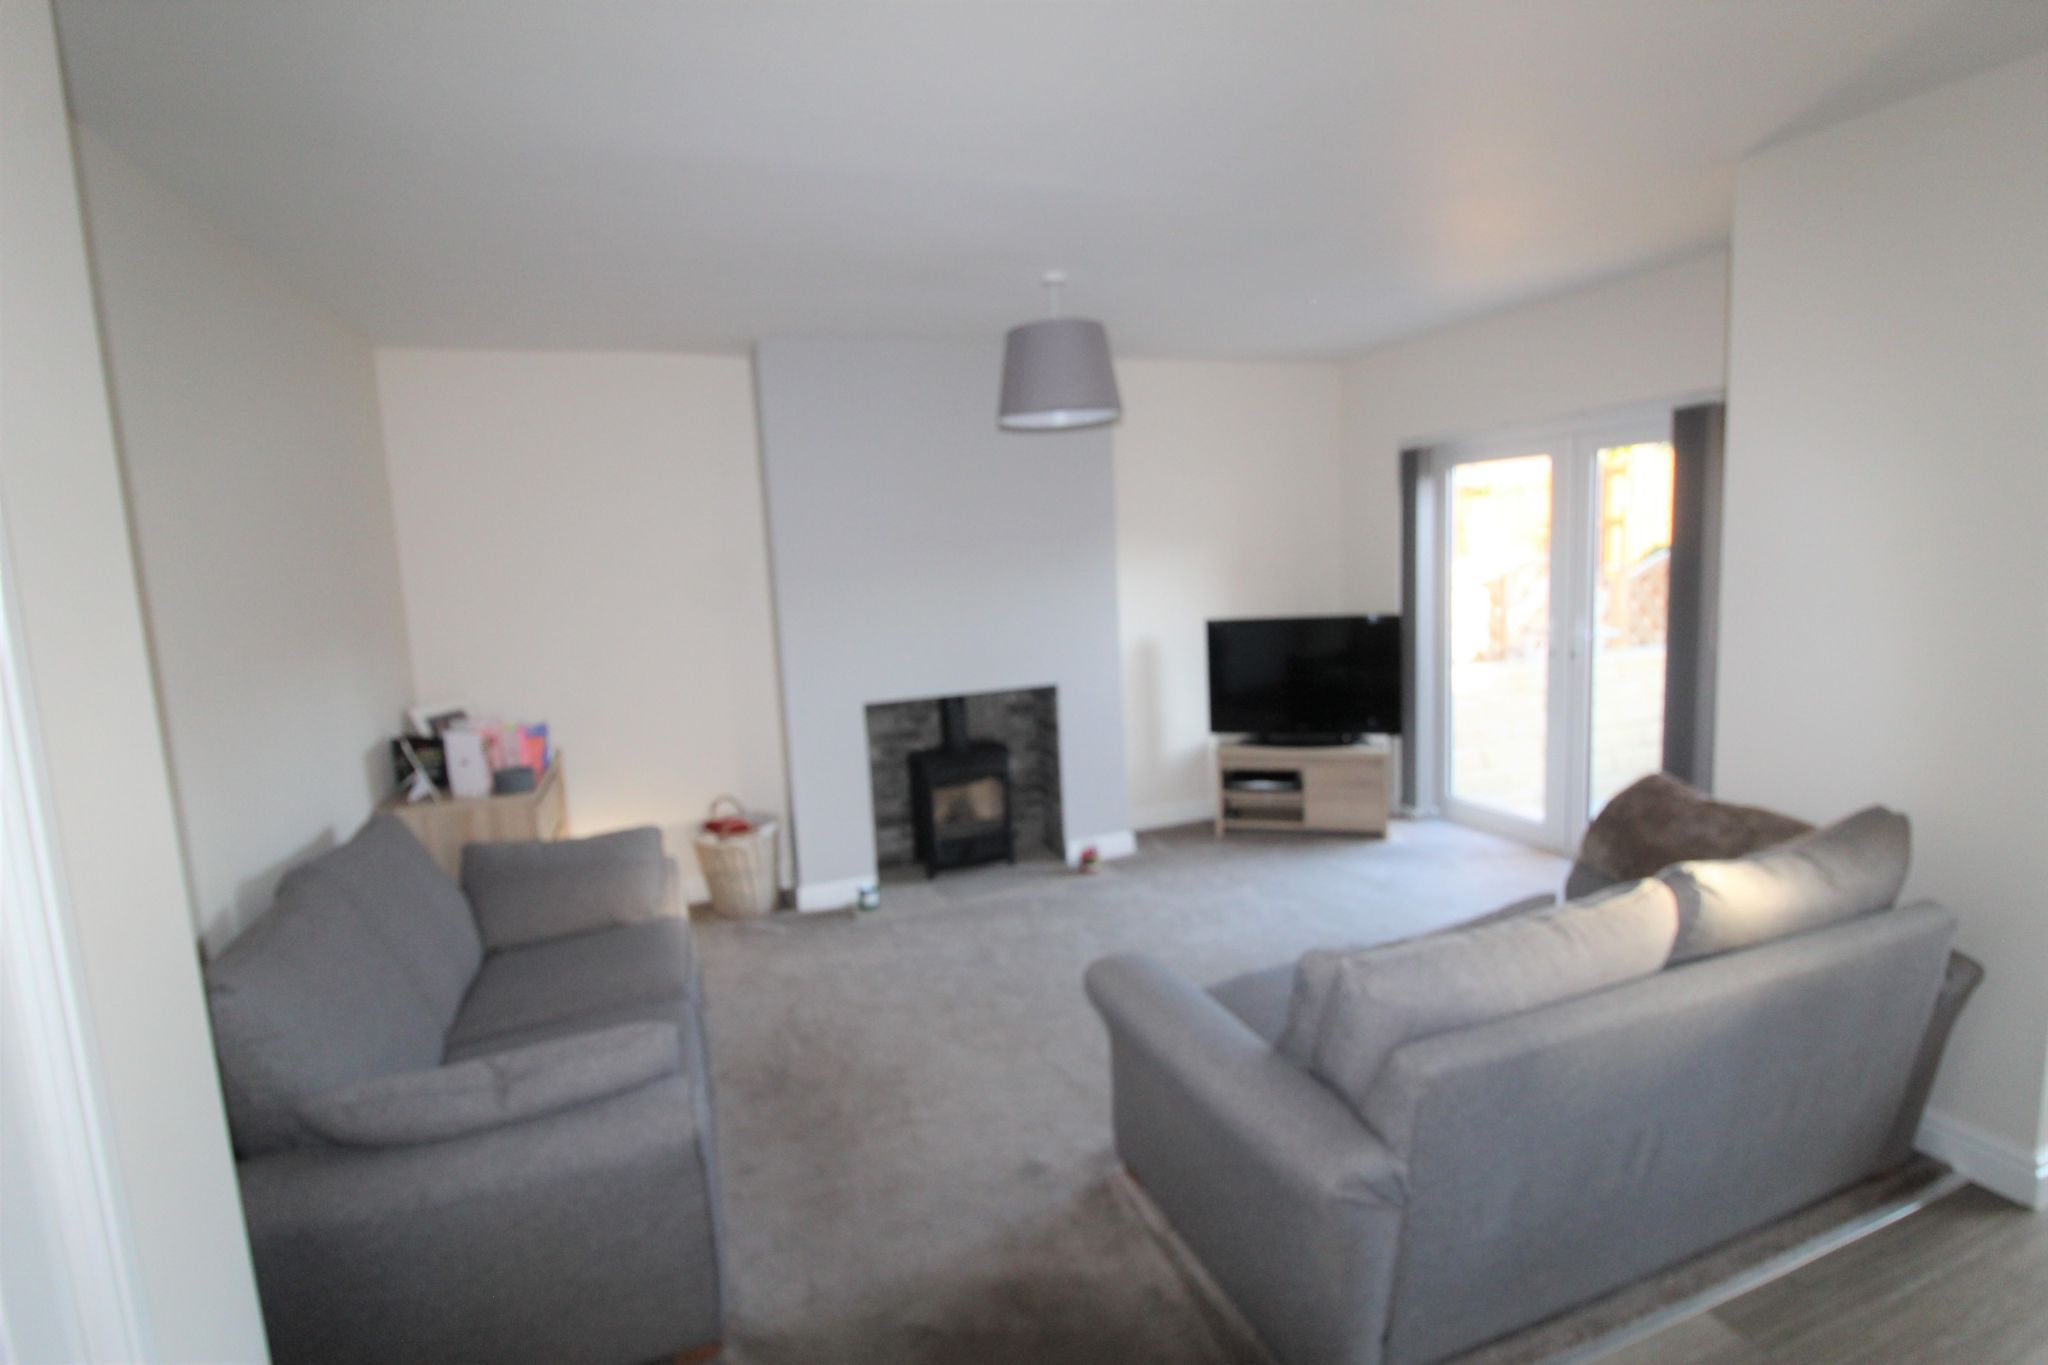 4 bedroom semi-detached bungalow SSTC in Brighouse - Lounge - picture 3